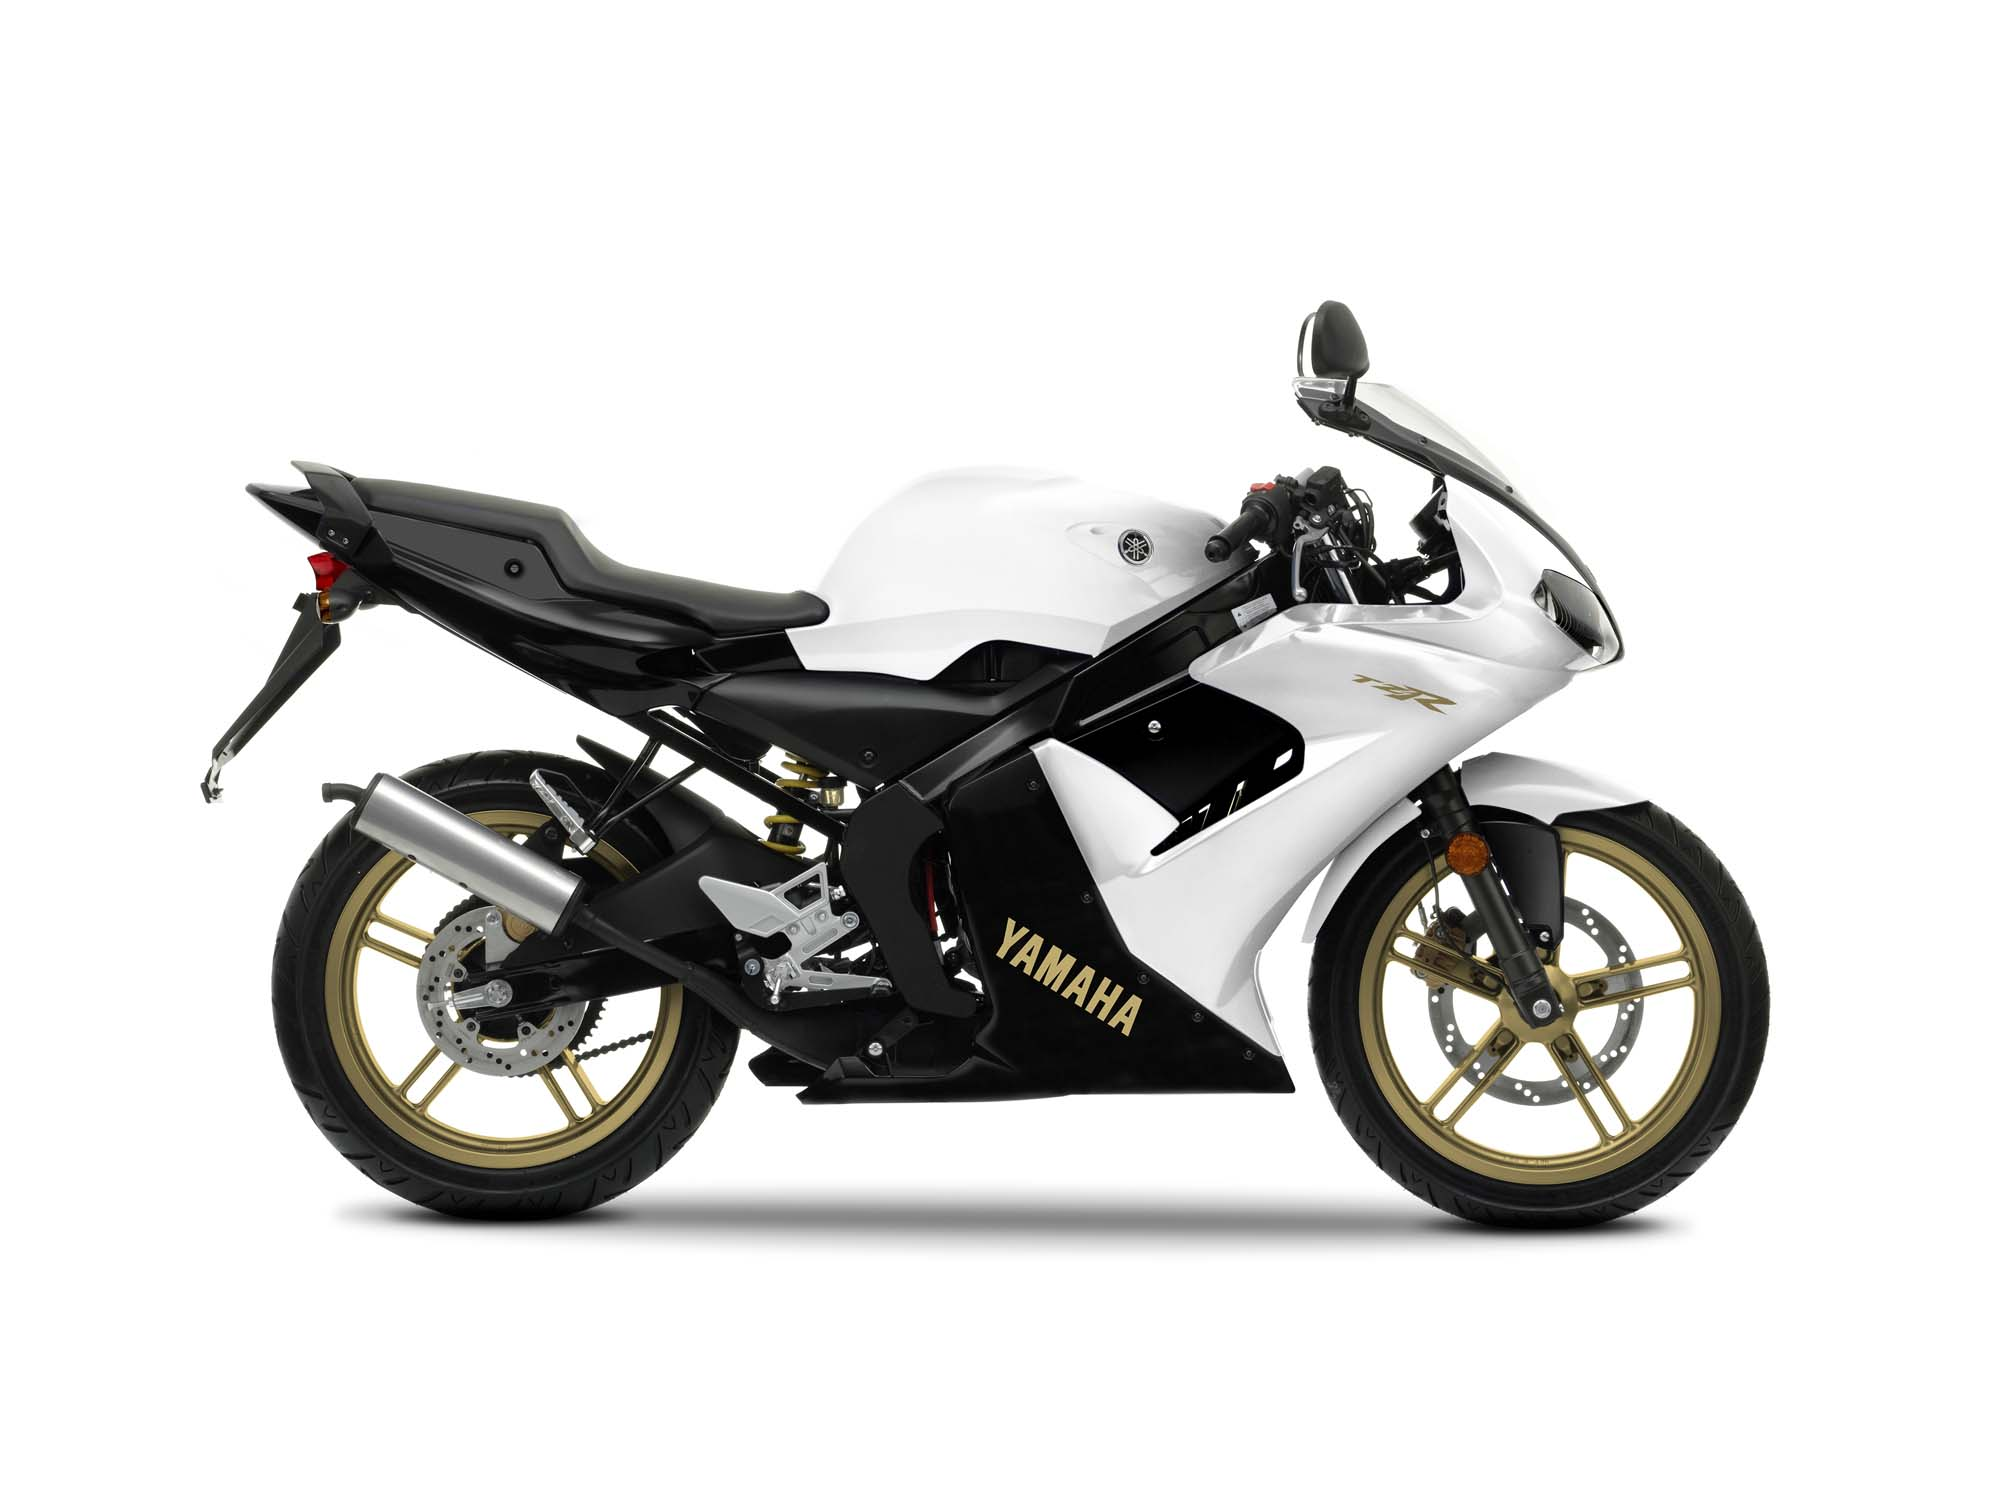 yamaha tzr 50 all technical data of the model tzr 50. Black Bedroom Furniture Sets. Home Design Ideas